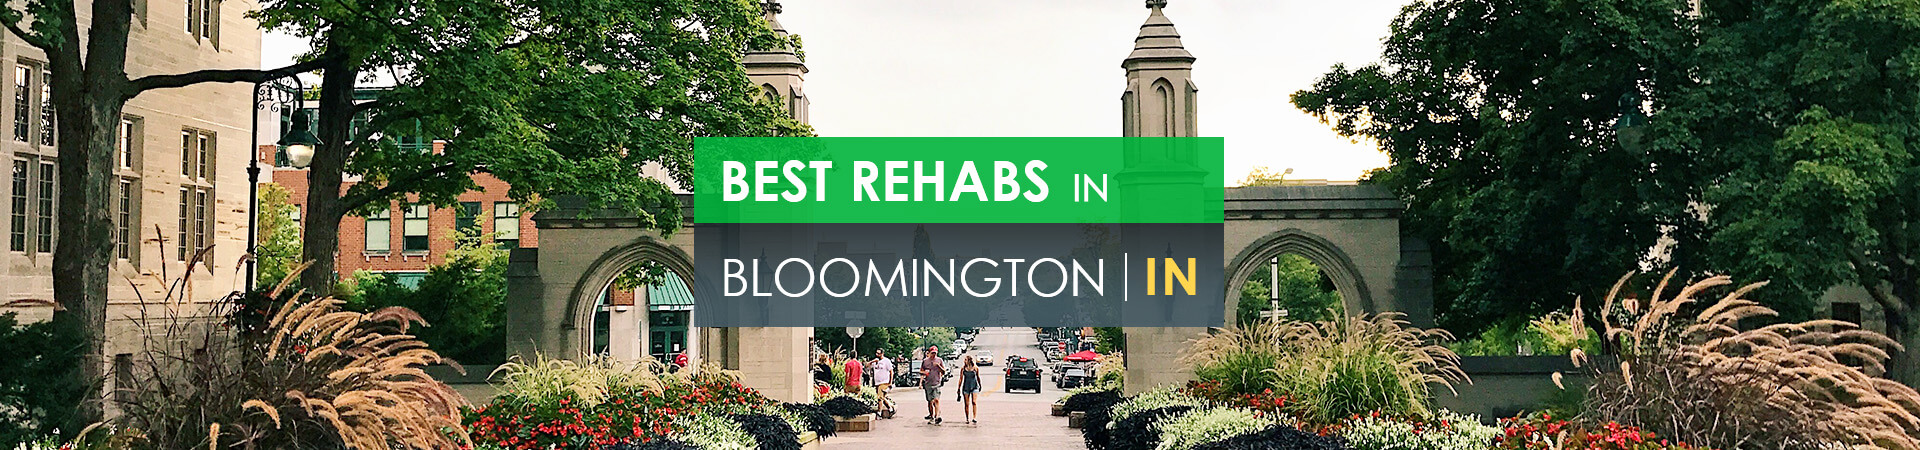 Best rehabs in Bloomington, IN